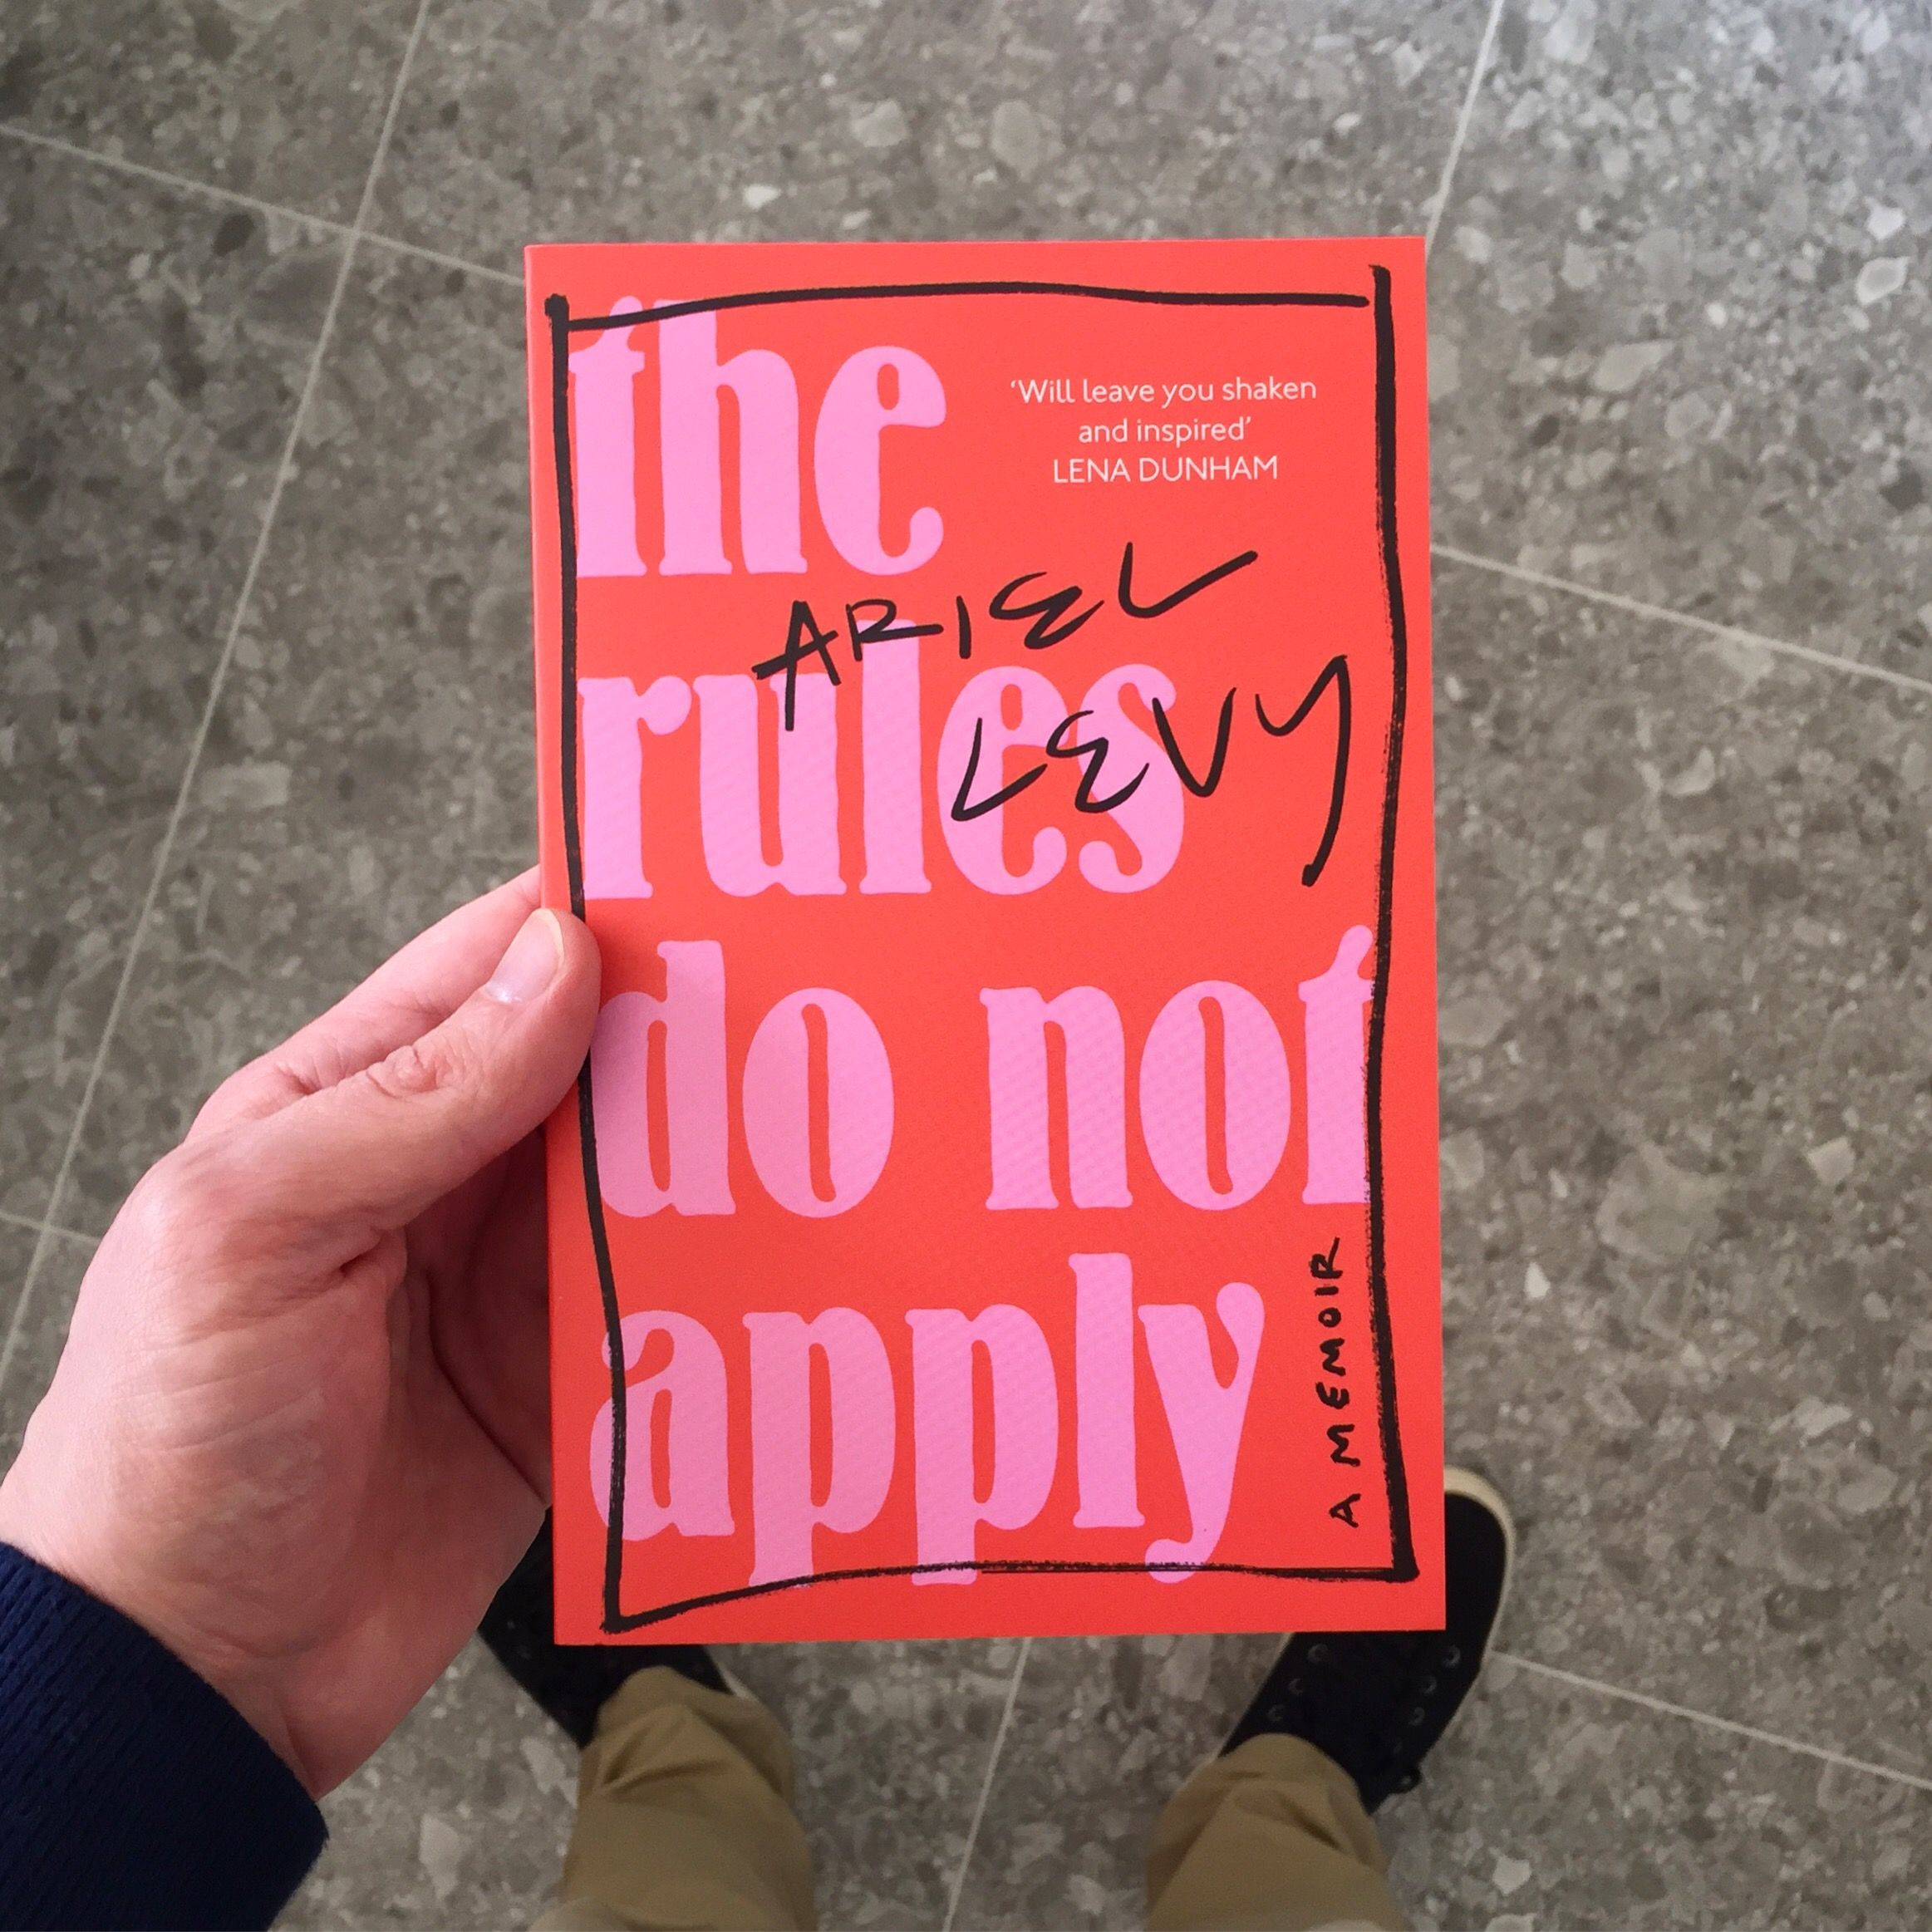 Recommending 'The Rules do not Apply' by Ariel Levy.